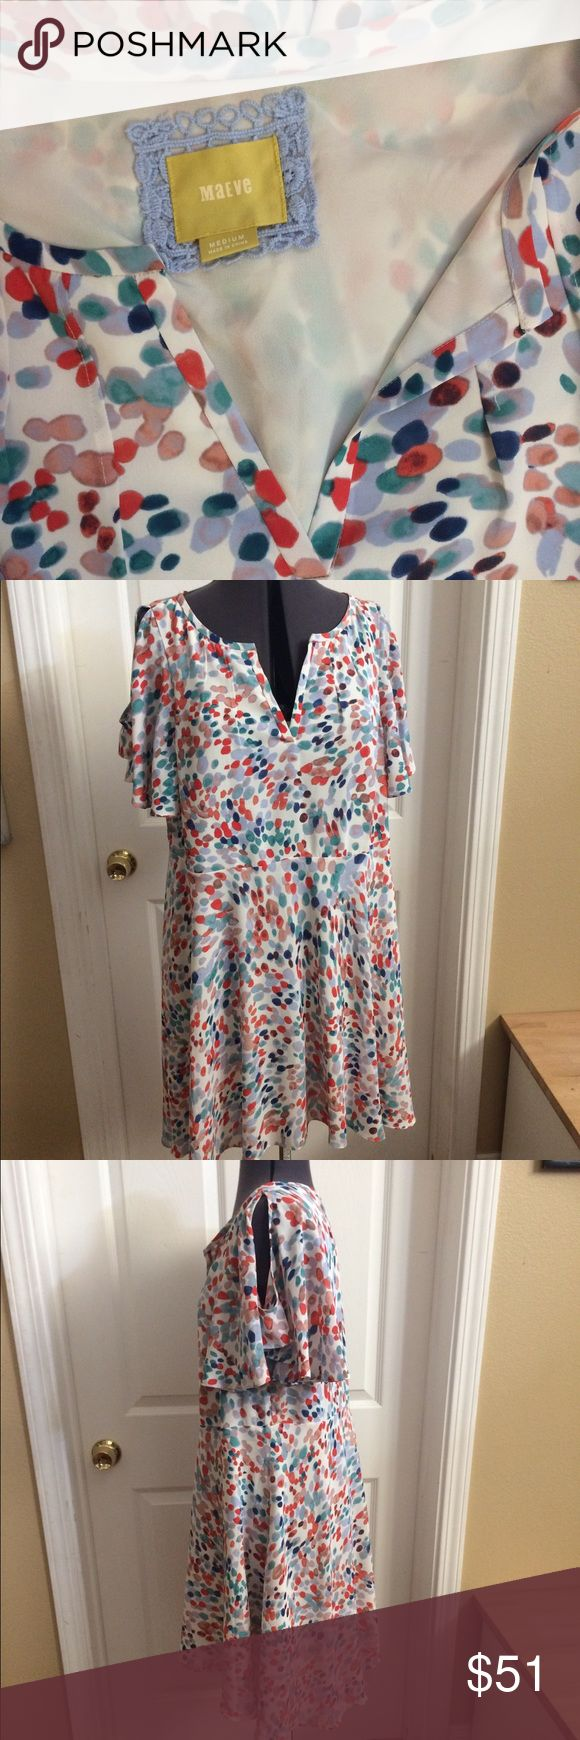 Maeve size Medium multi color party dress! What an adorable dress! White with multi color dots and an Anthropology brand! Perfect for a weekend trip or brunch with your friends! Reads size medium but has space for a Large (depending on your measurements.) maeve Dresses Midi